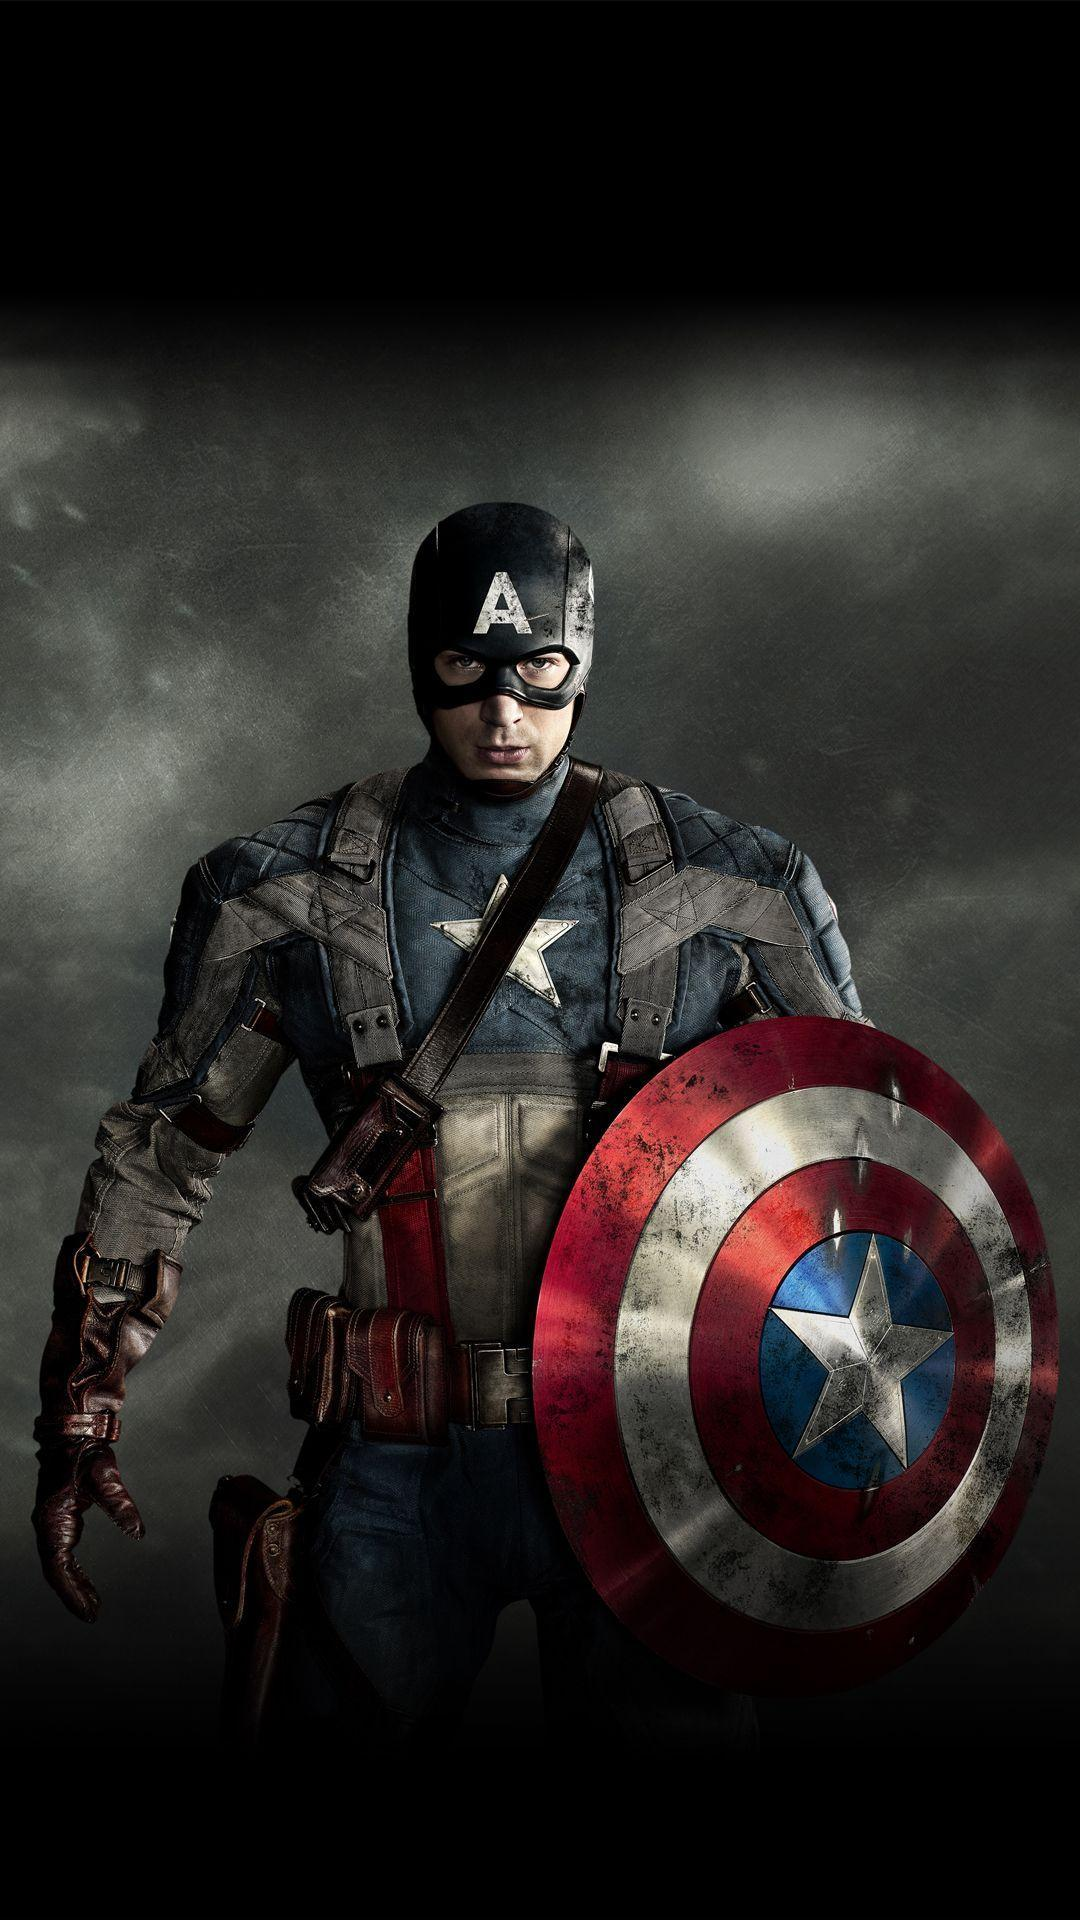 The Avengers Captain America HTC hd wallpapers